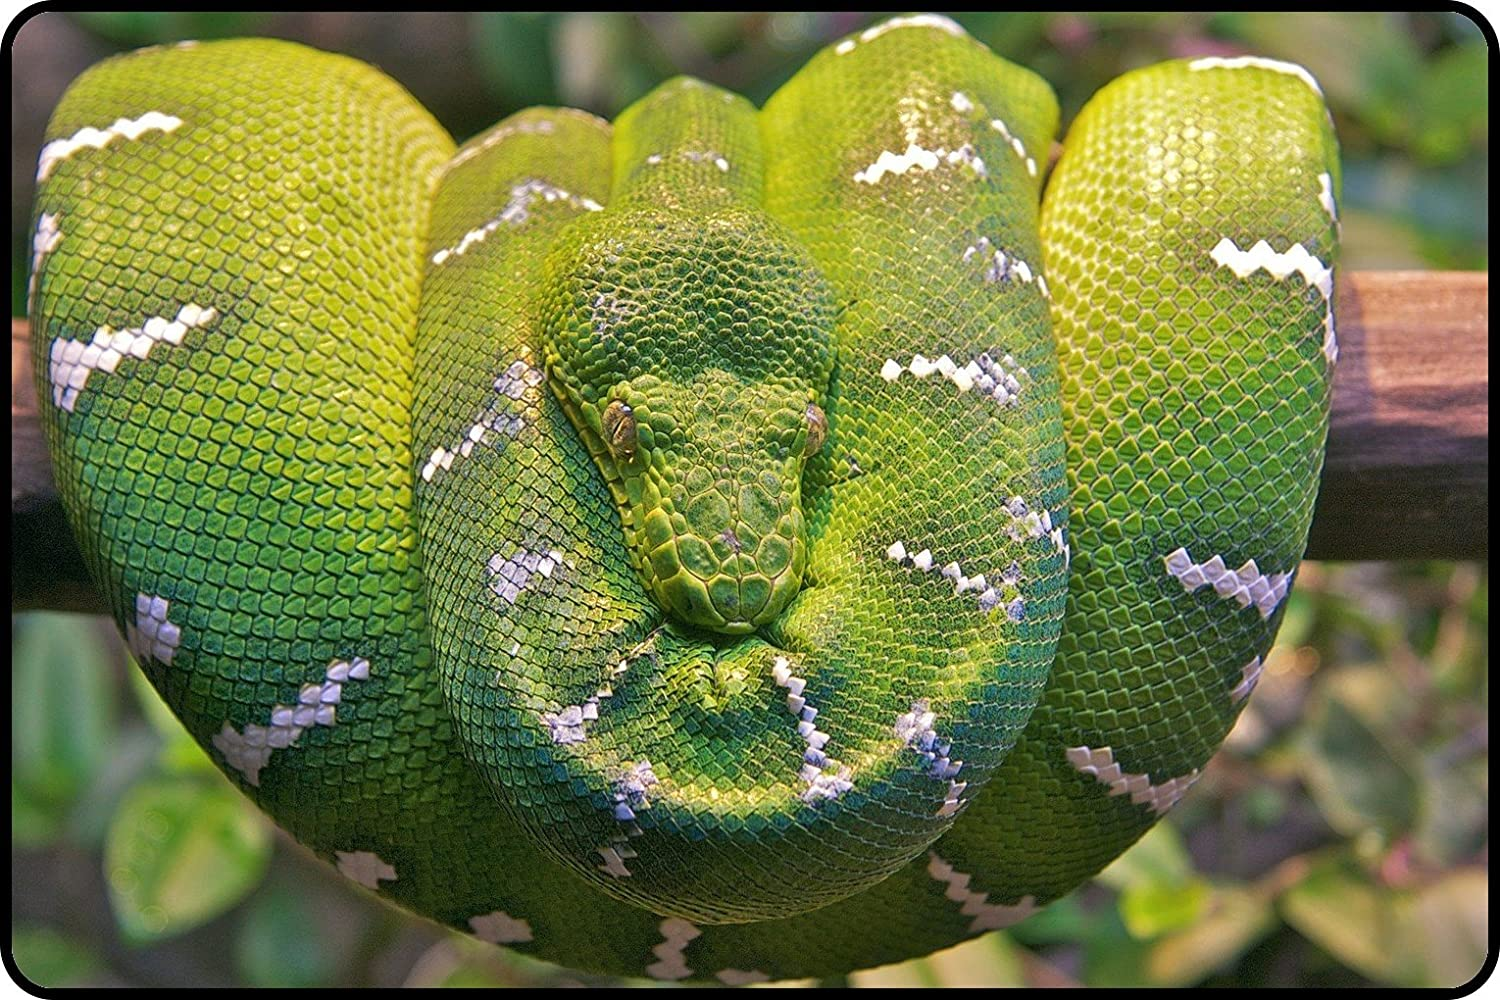 Amazon.com : L.Z.Y Portable with Extended emerald tree boa branch ...